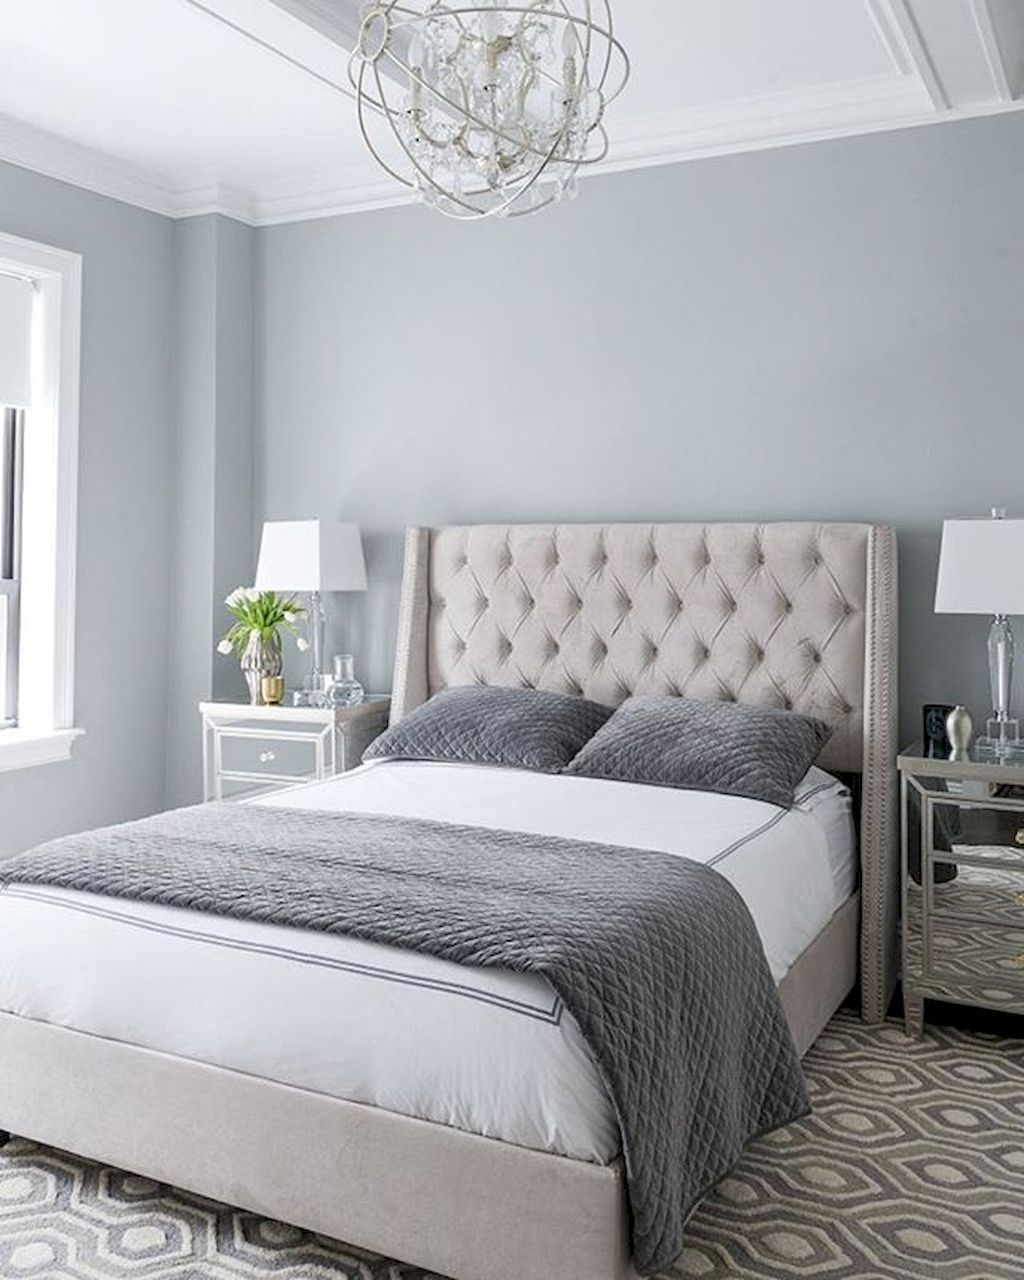 Master bedroom ensuite plans  Gorgeous  Glamorous Dream Master Bedroom Decor Ideas And Remodel